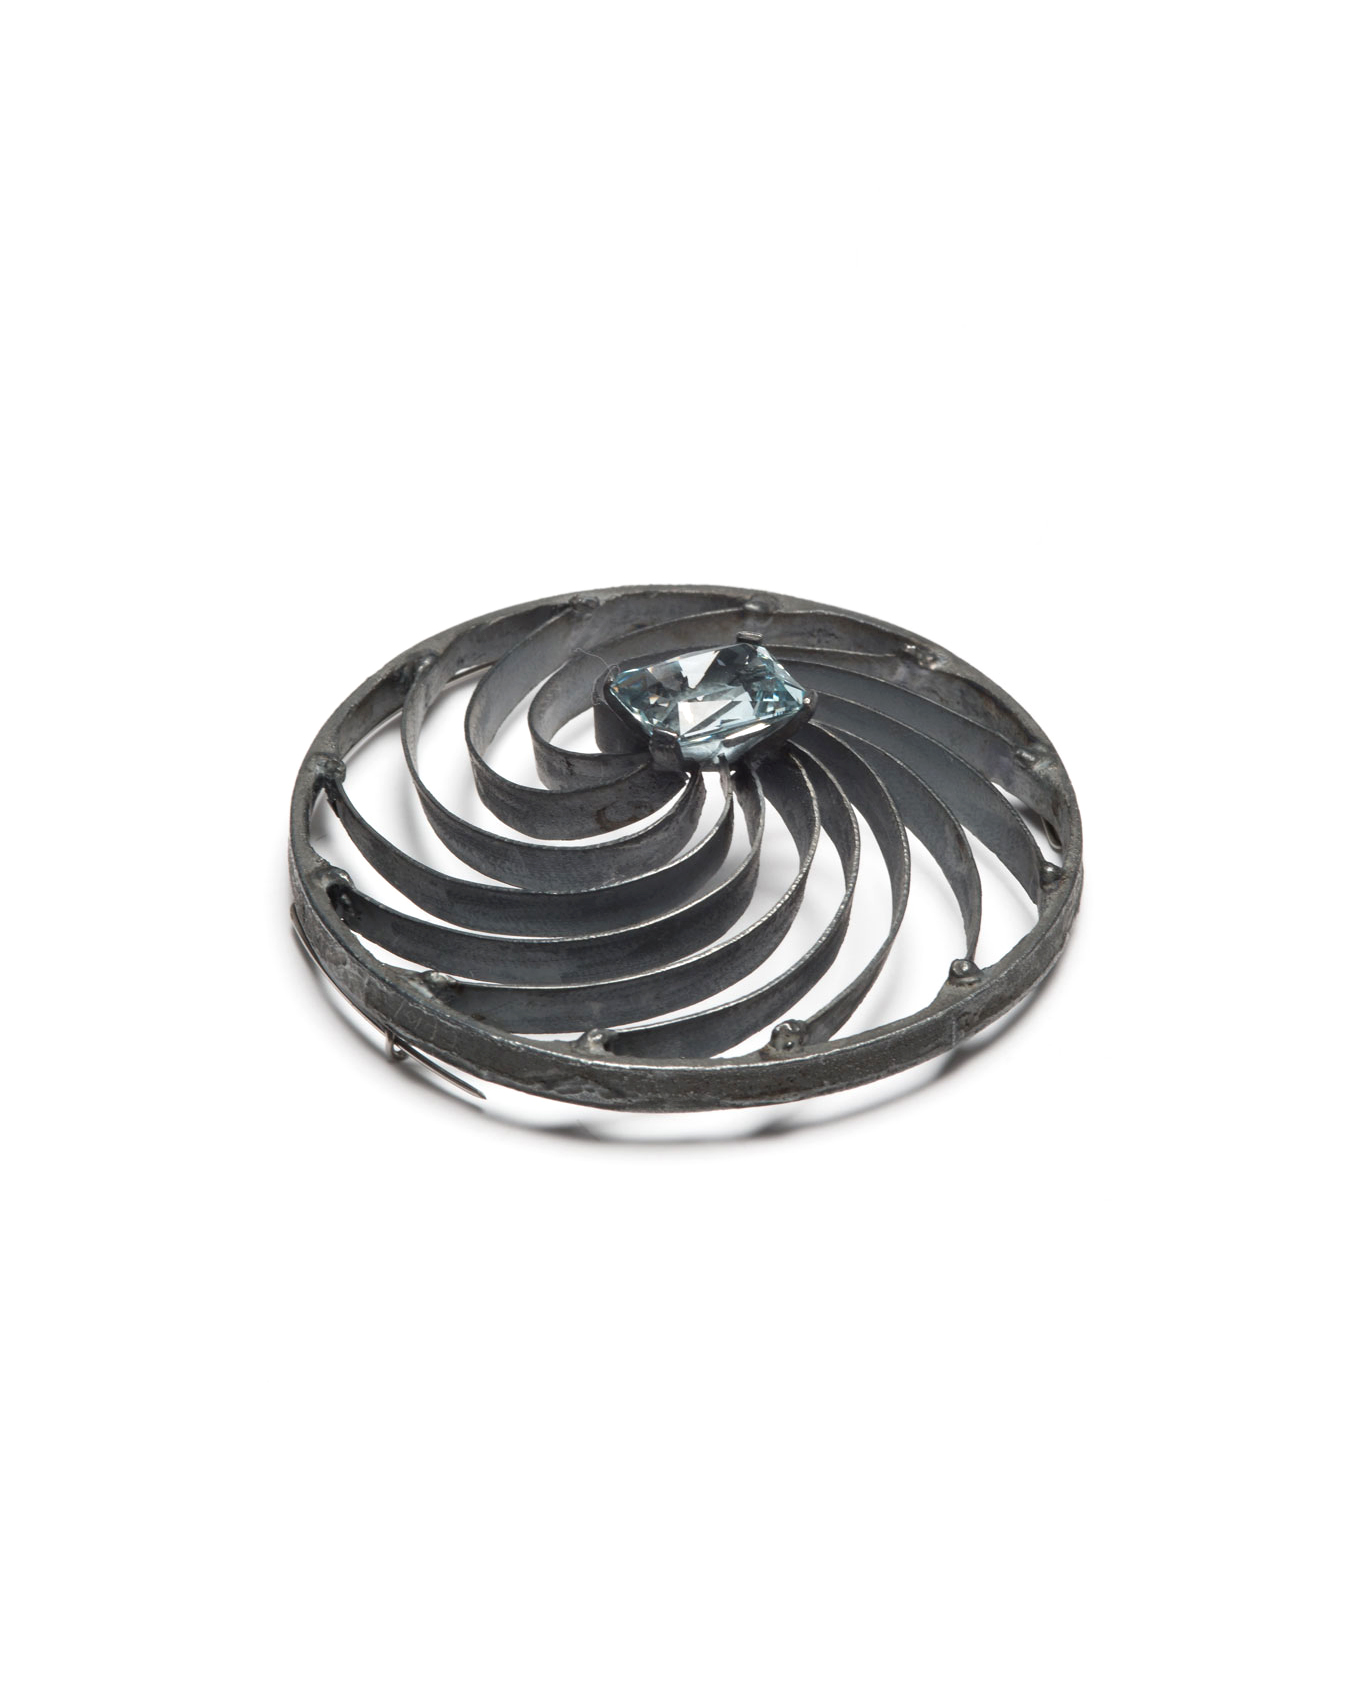 Winfried Krüger, untitled, 1991, brooch; oxidised silver, aquamarine, ø 70 mm, €1940